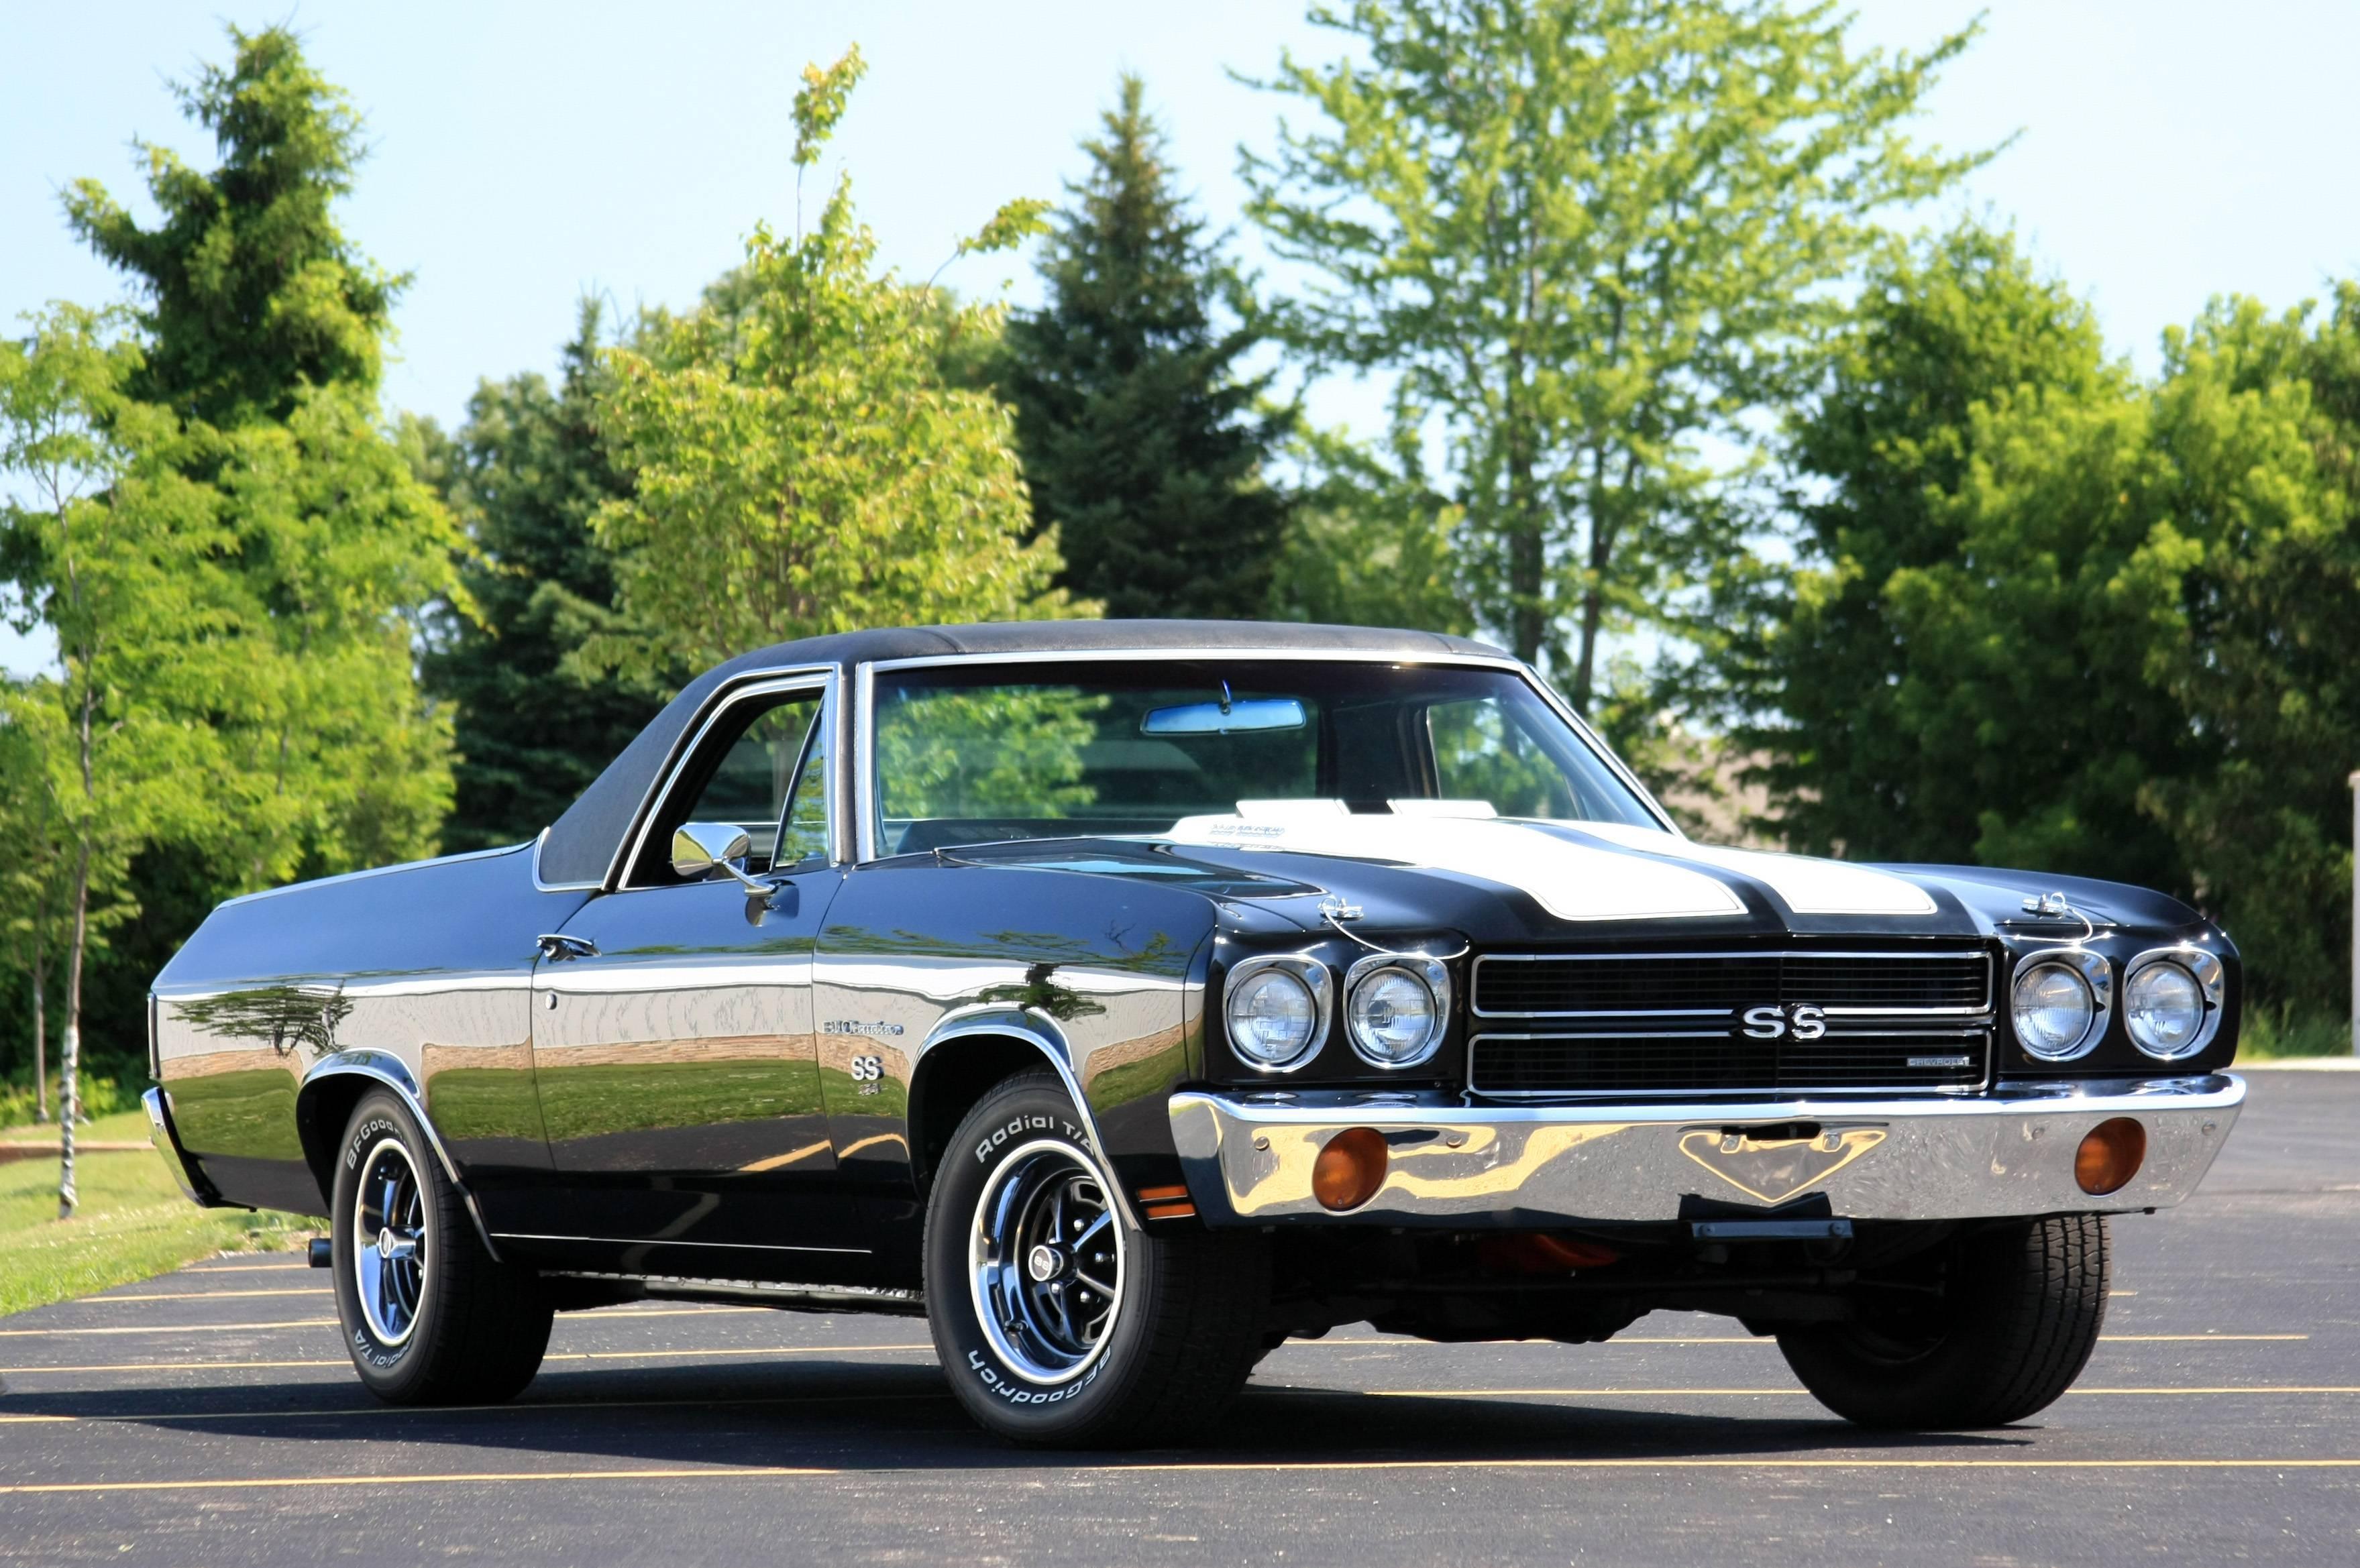 Chevrolet El Camino Wallpapers HD Photos, Wallpapers and other Image